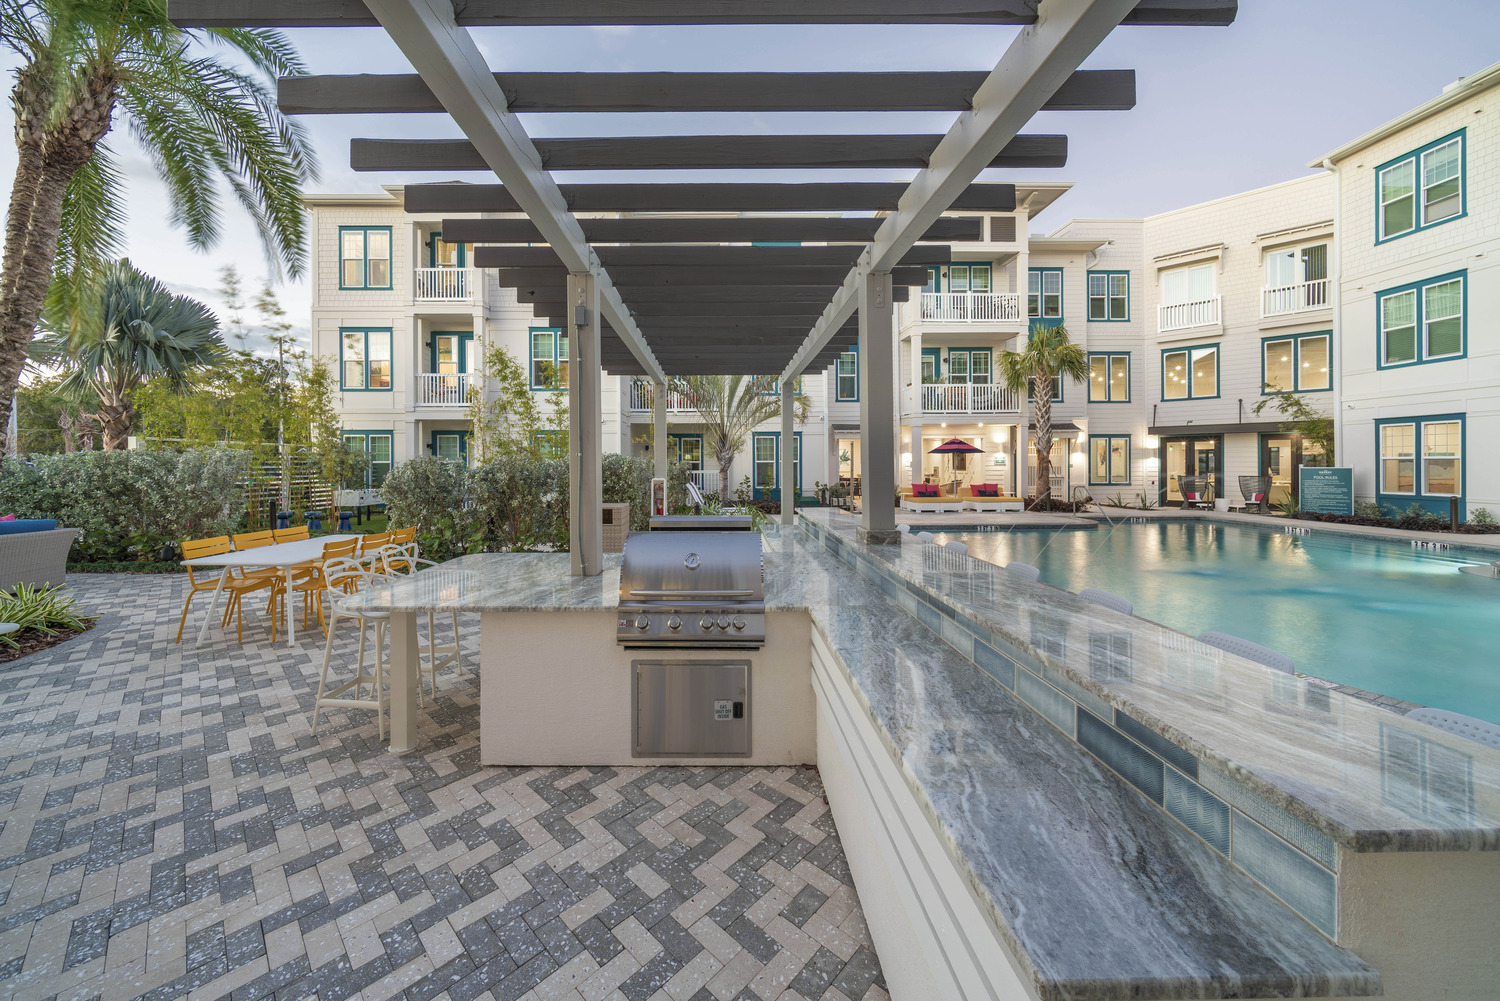 CBG builds The Rosery, a 224-Unit Luxury Apartment Community Across Four Buildings in Largo, FL - Image #2